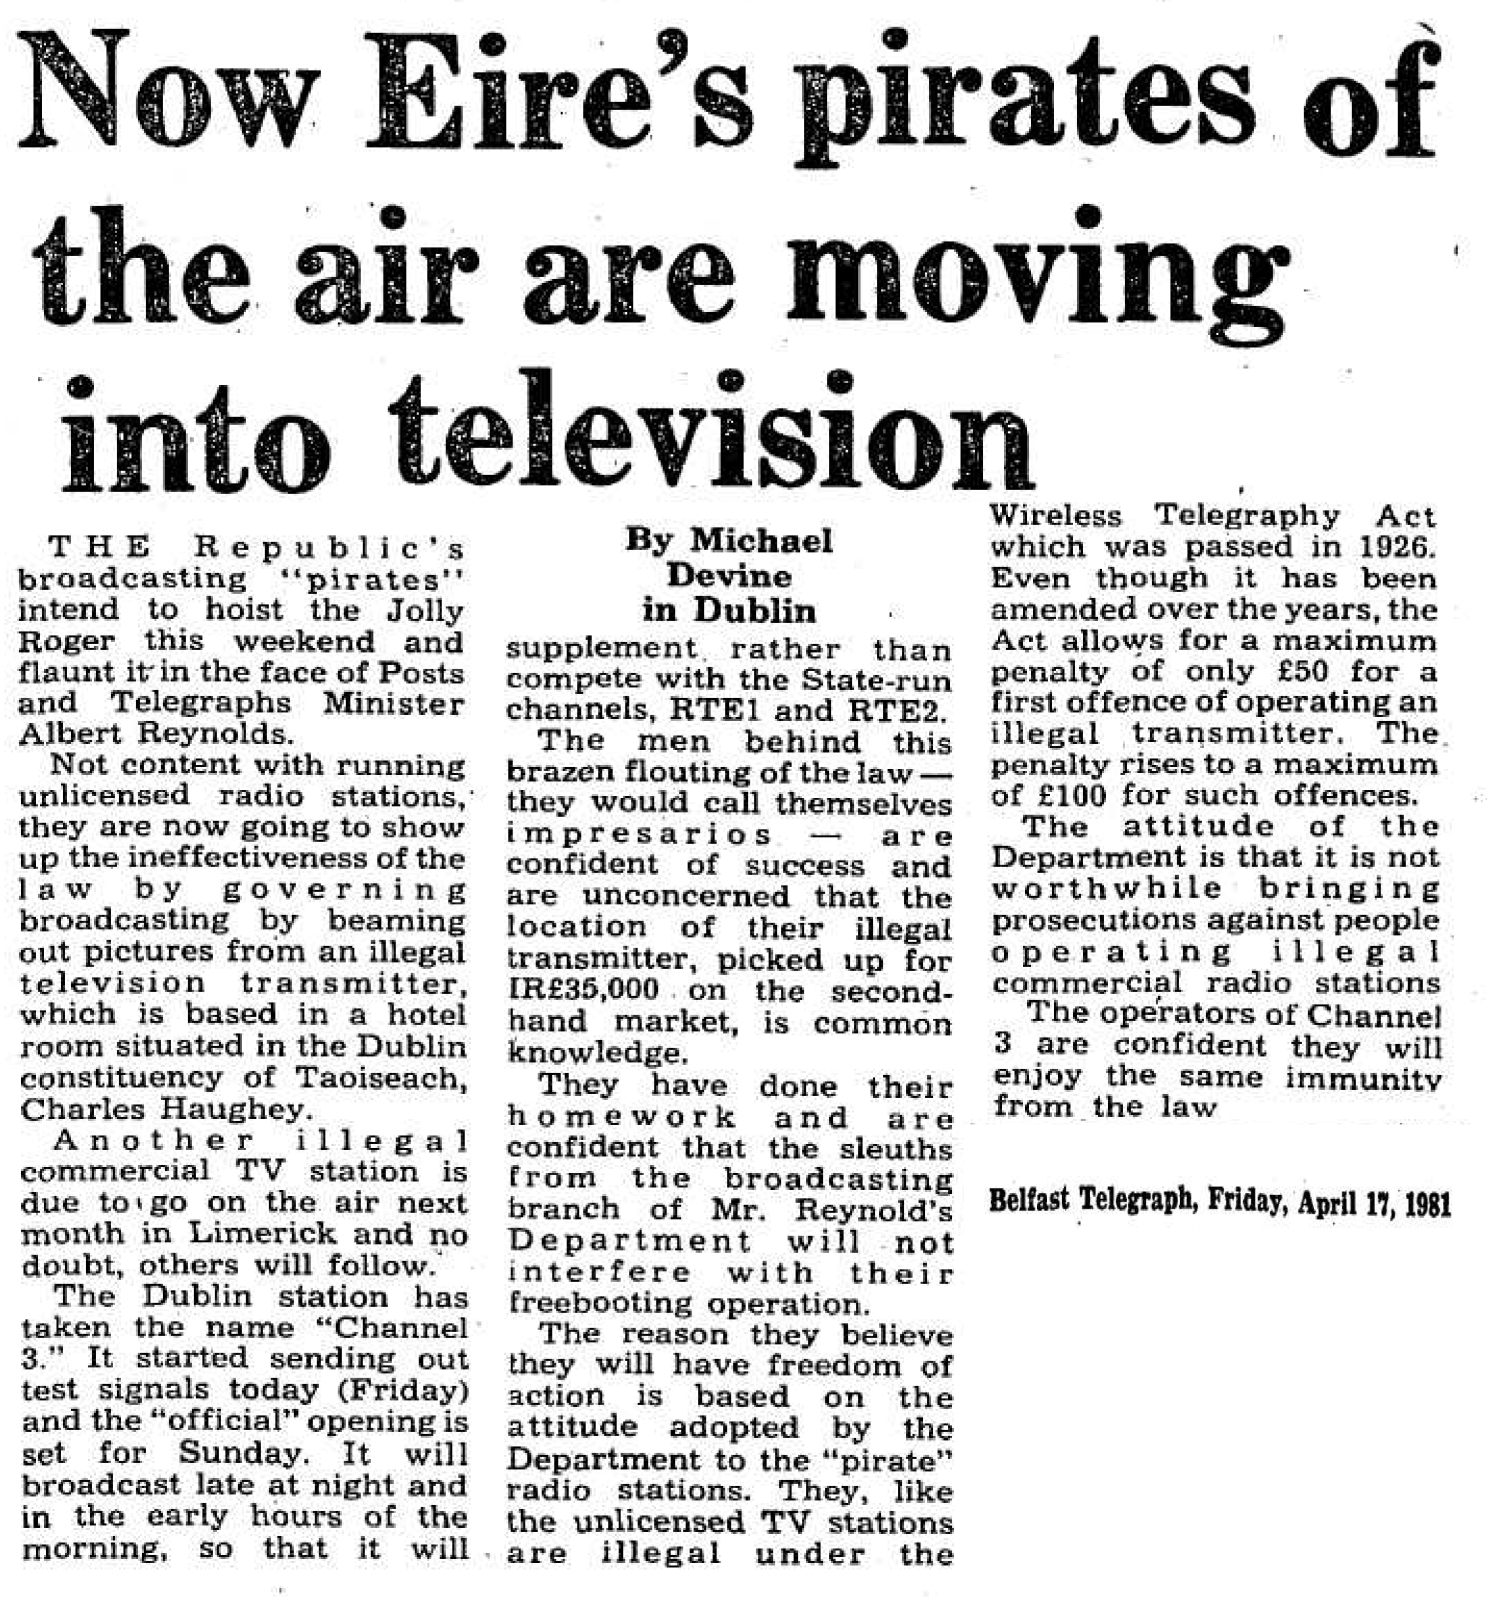 Now Eire's pirates of the air are moving into television was a newspaper headline from the Belfast Telegraph dated April 17th 1981